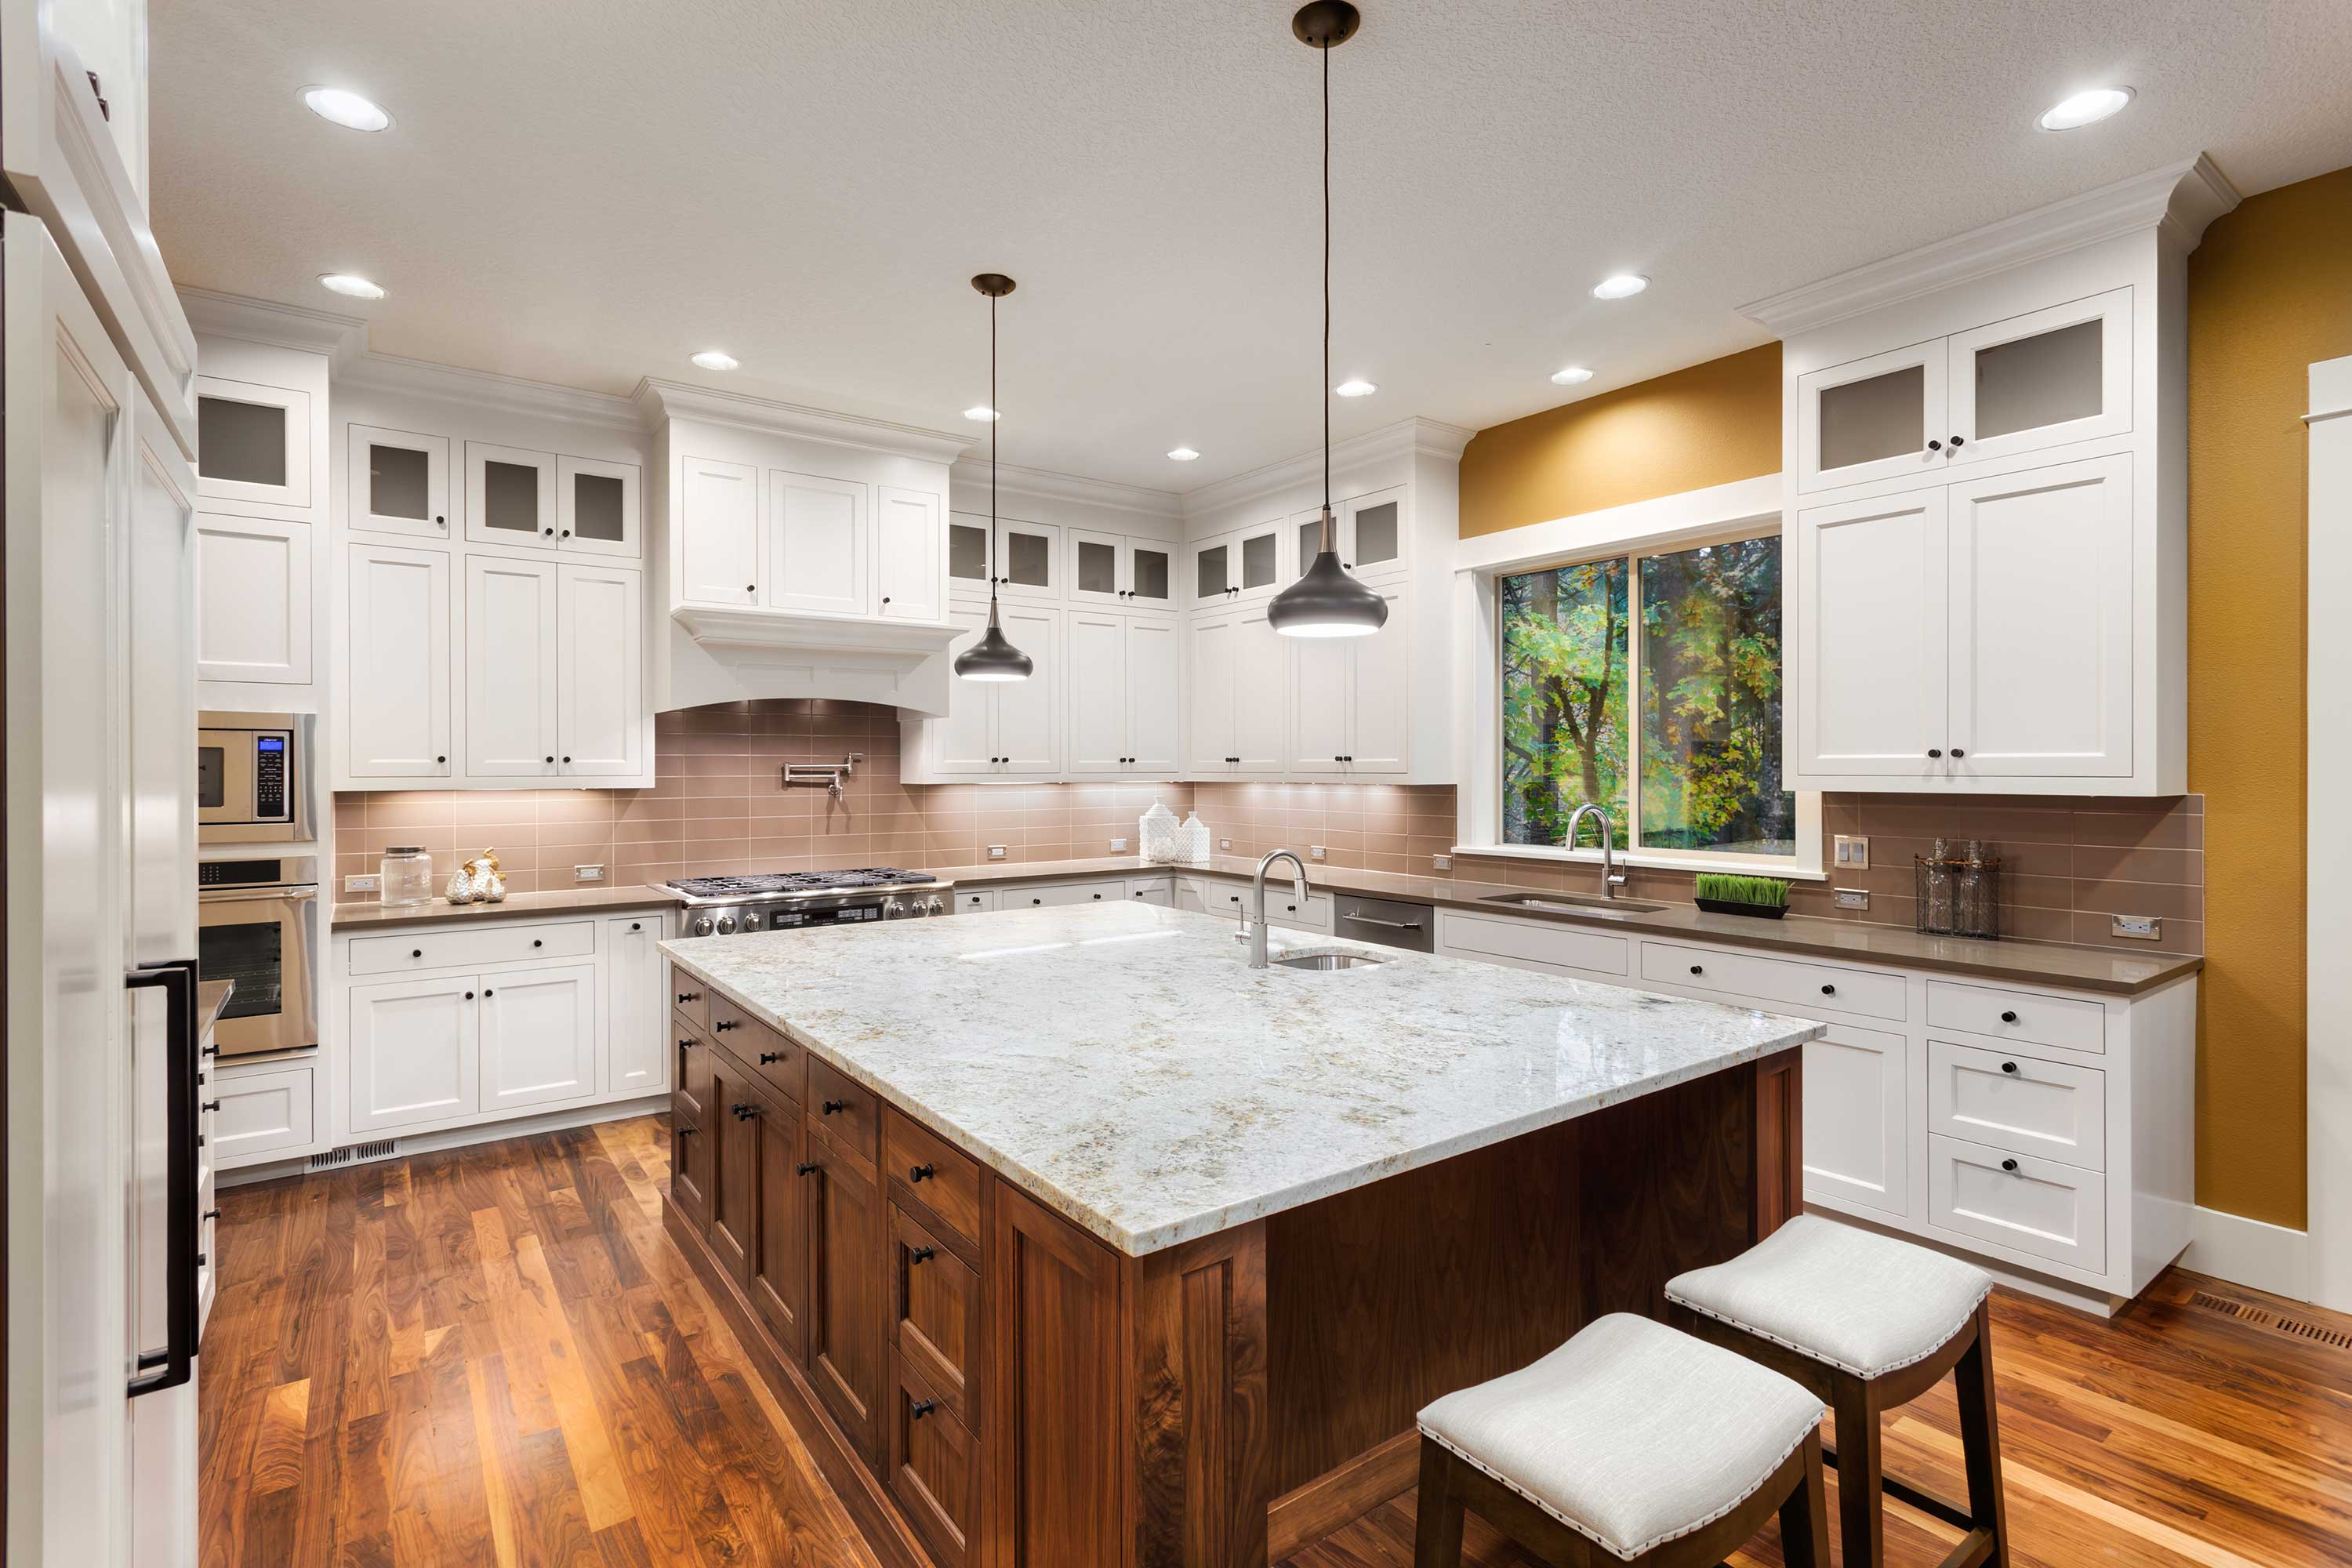 Kitchen Remodeling Tips To Save You Money Residential - Kitchen remodelling tips